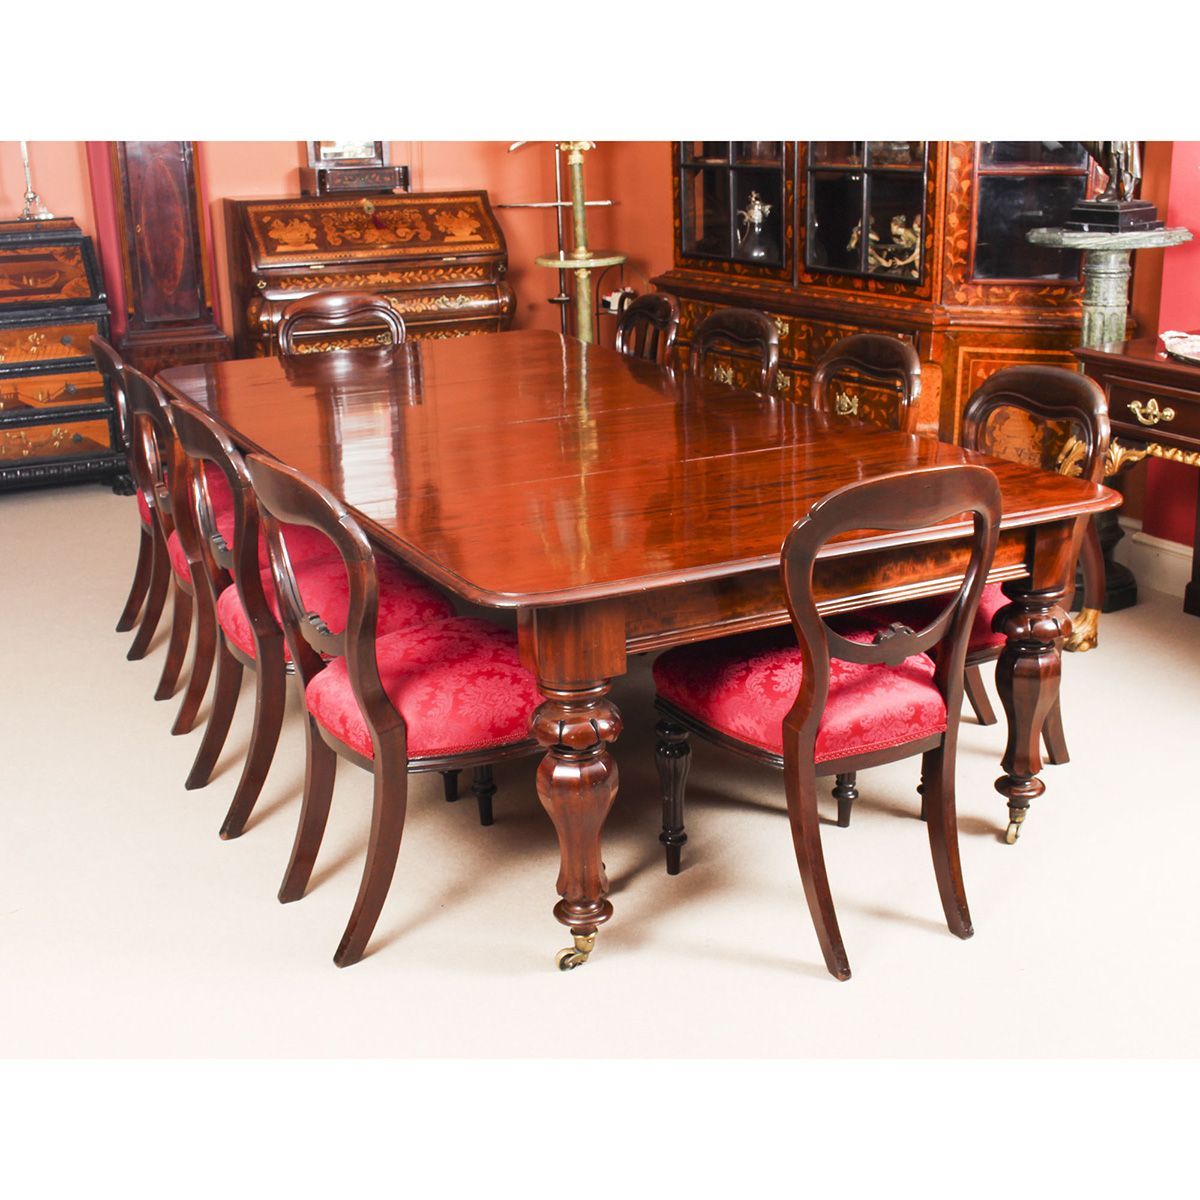 Antique William Iv Mahogany Dining Table Set 10 Chairs Circa